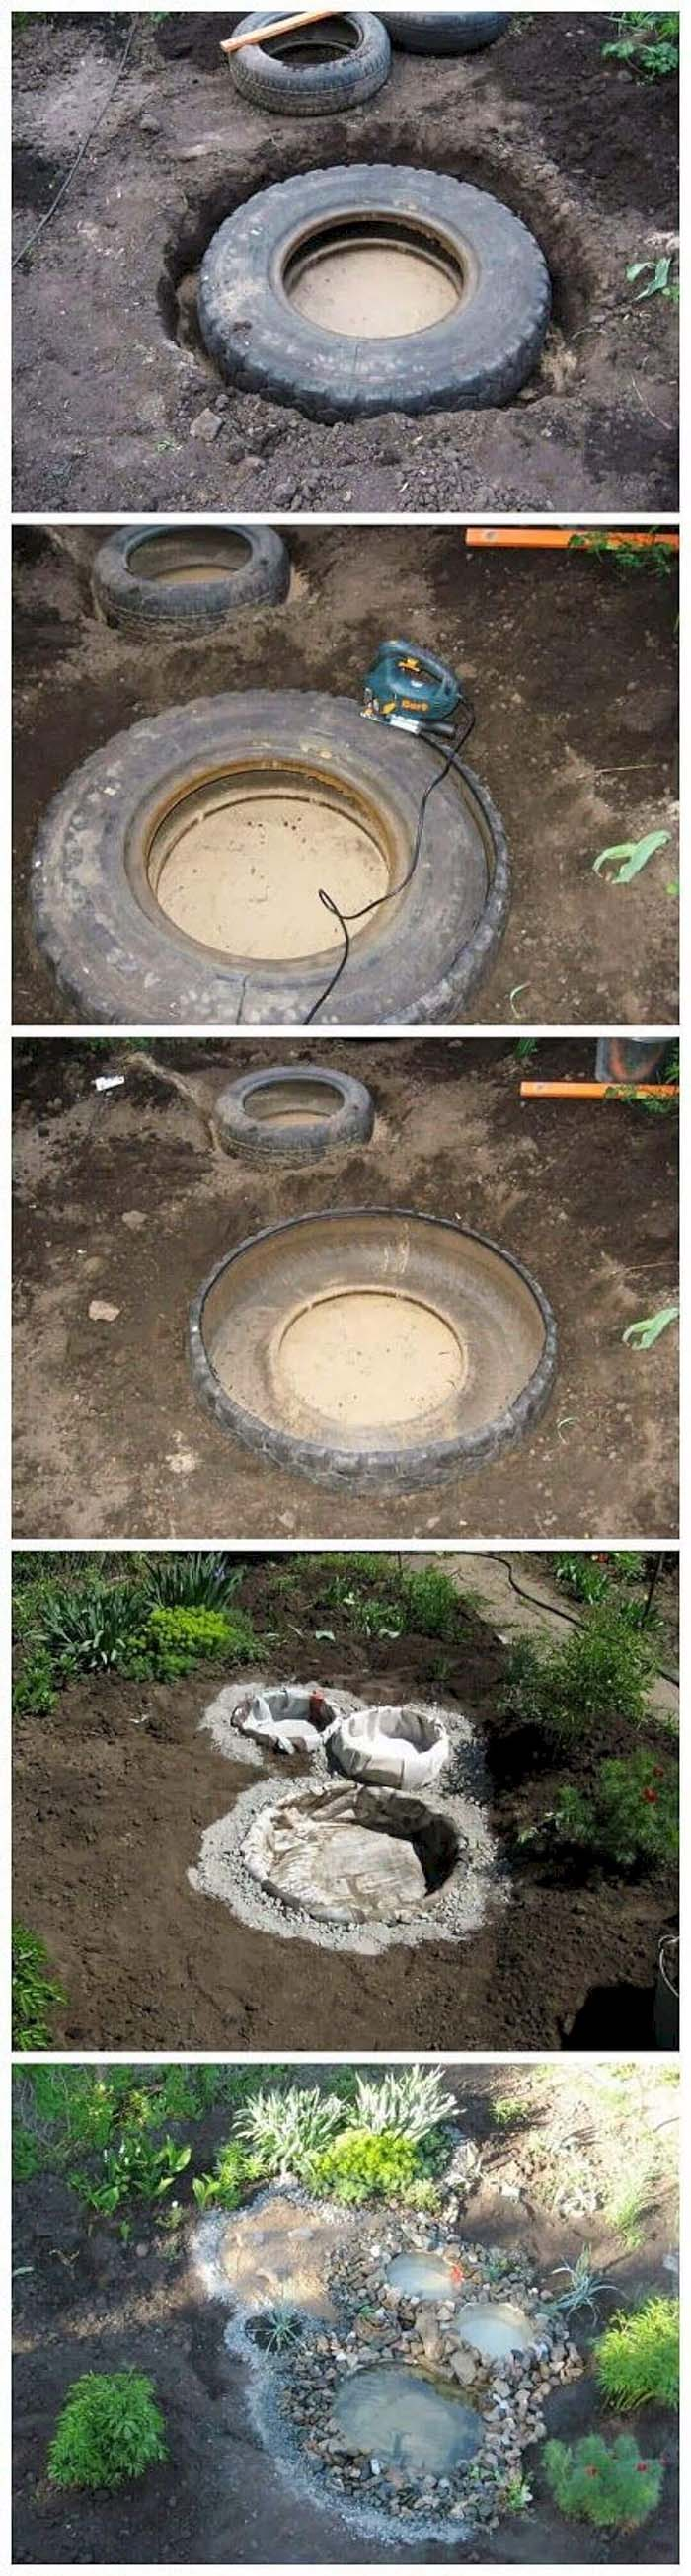 Multi-Basin Recycled Tire Water Feature #pond #diy #garden #waterfeature #decorhomeideas